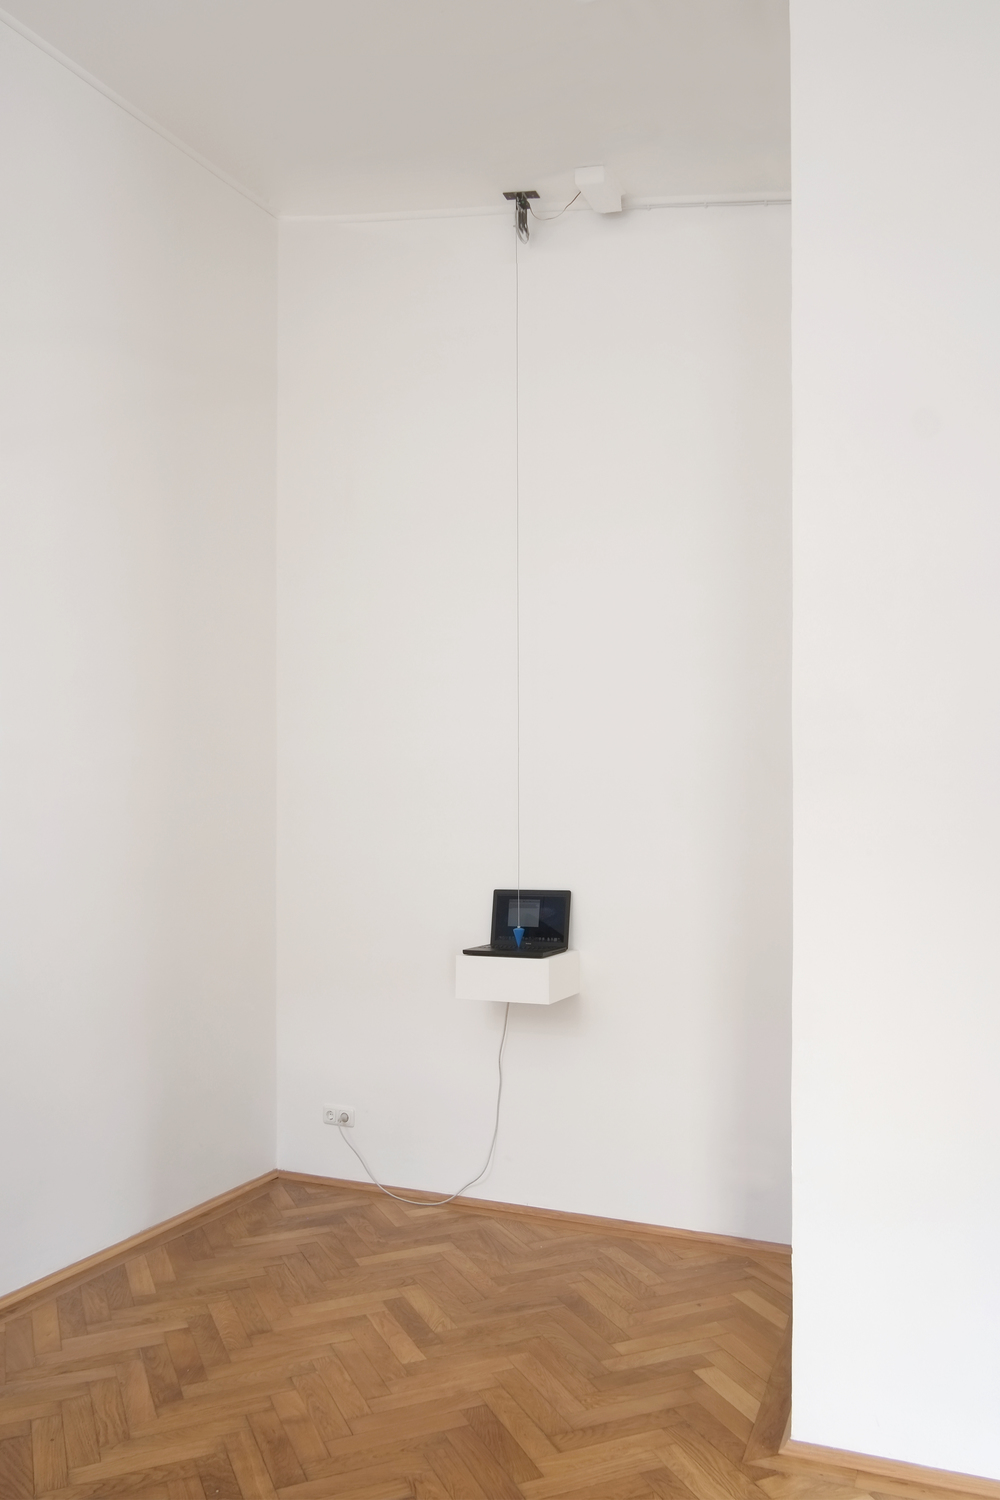 Alex Grein, Laughing Out Loud, 2015, laptop, electric linkage with pendulum, format variable